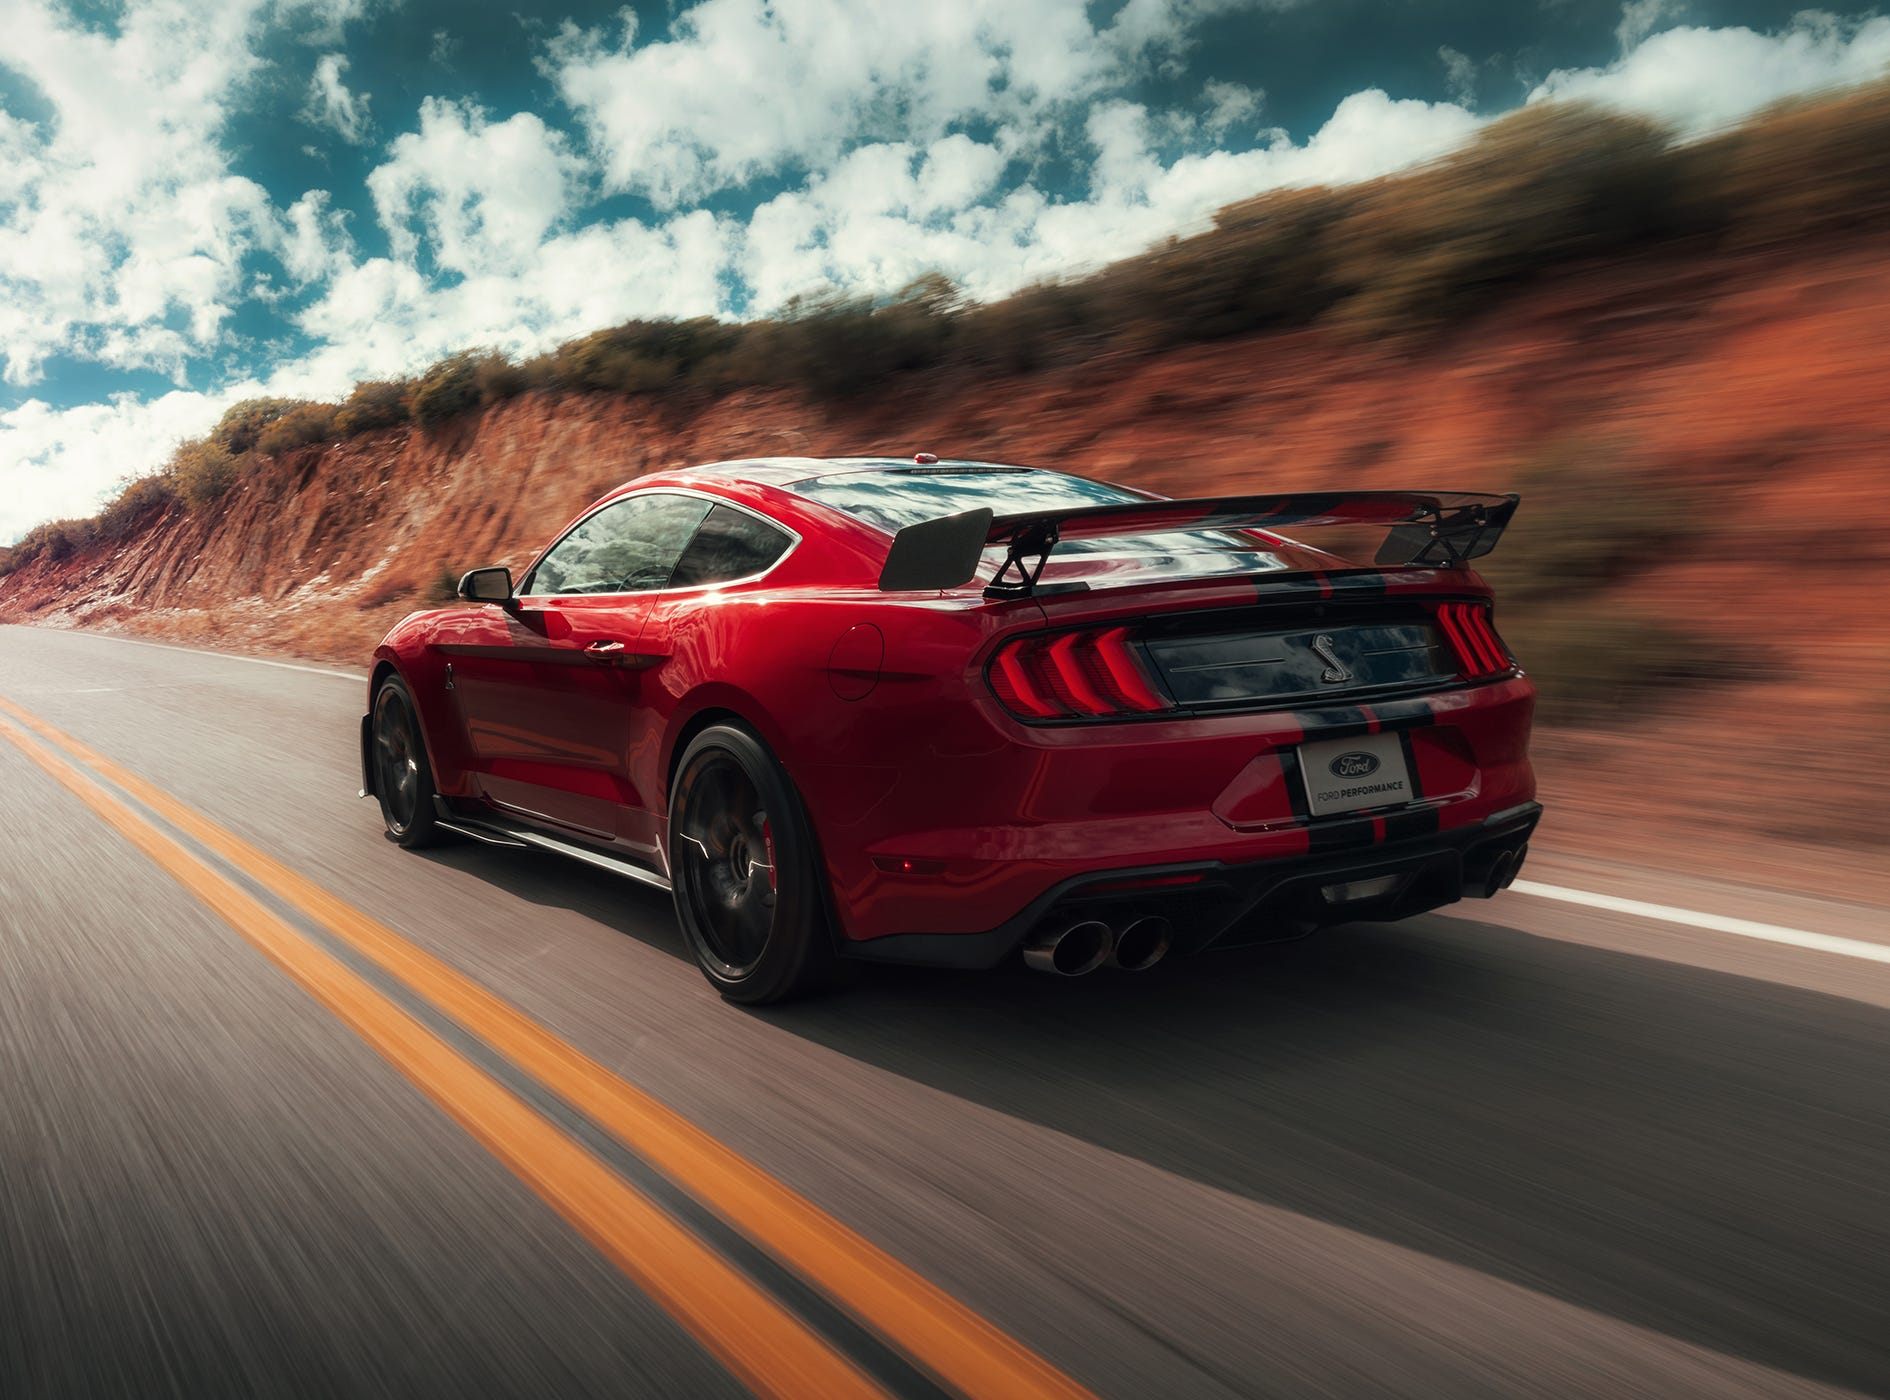 The all-new Shelby GT500